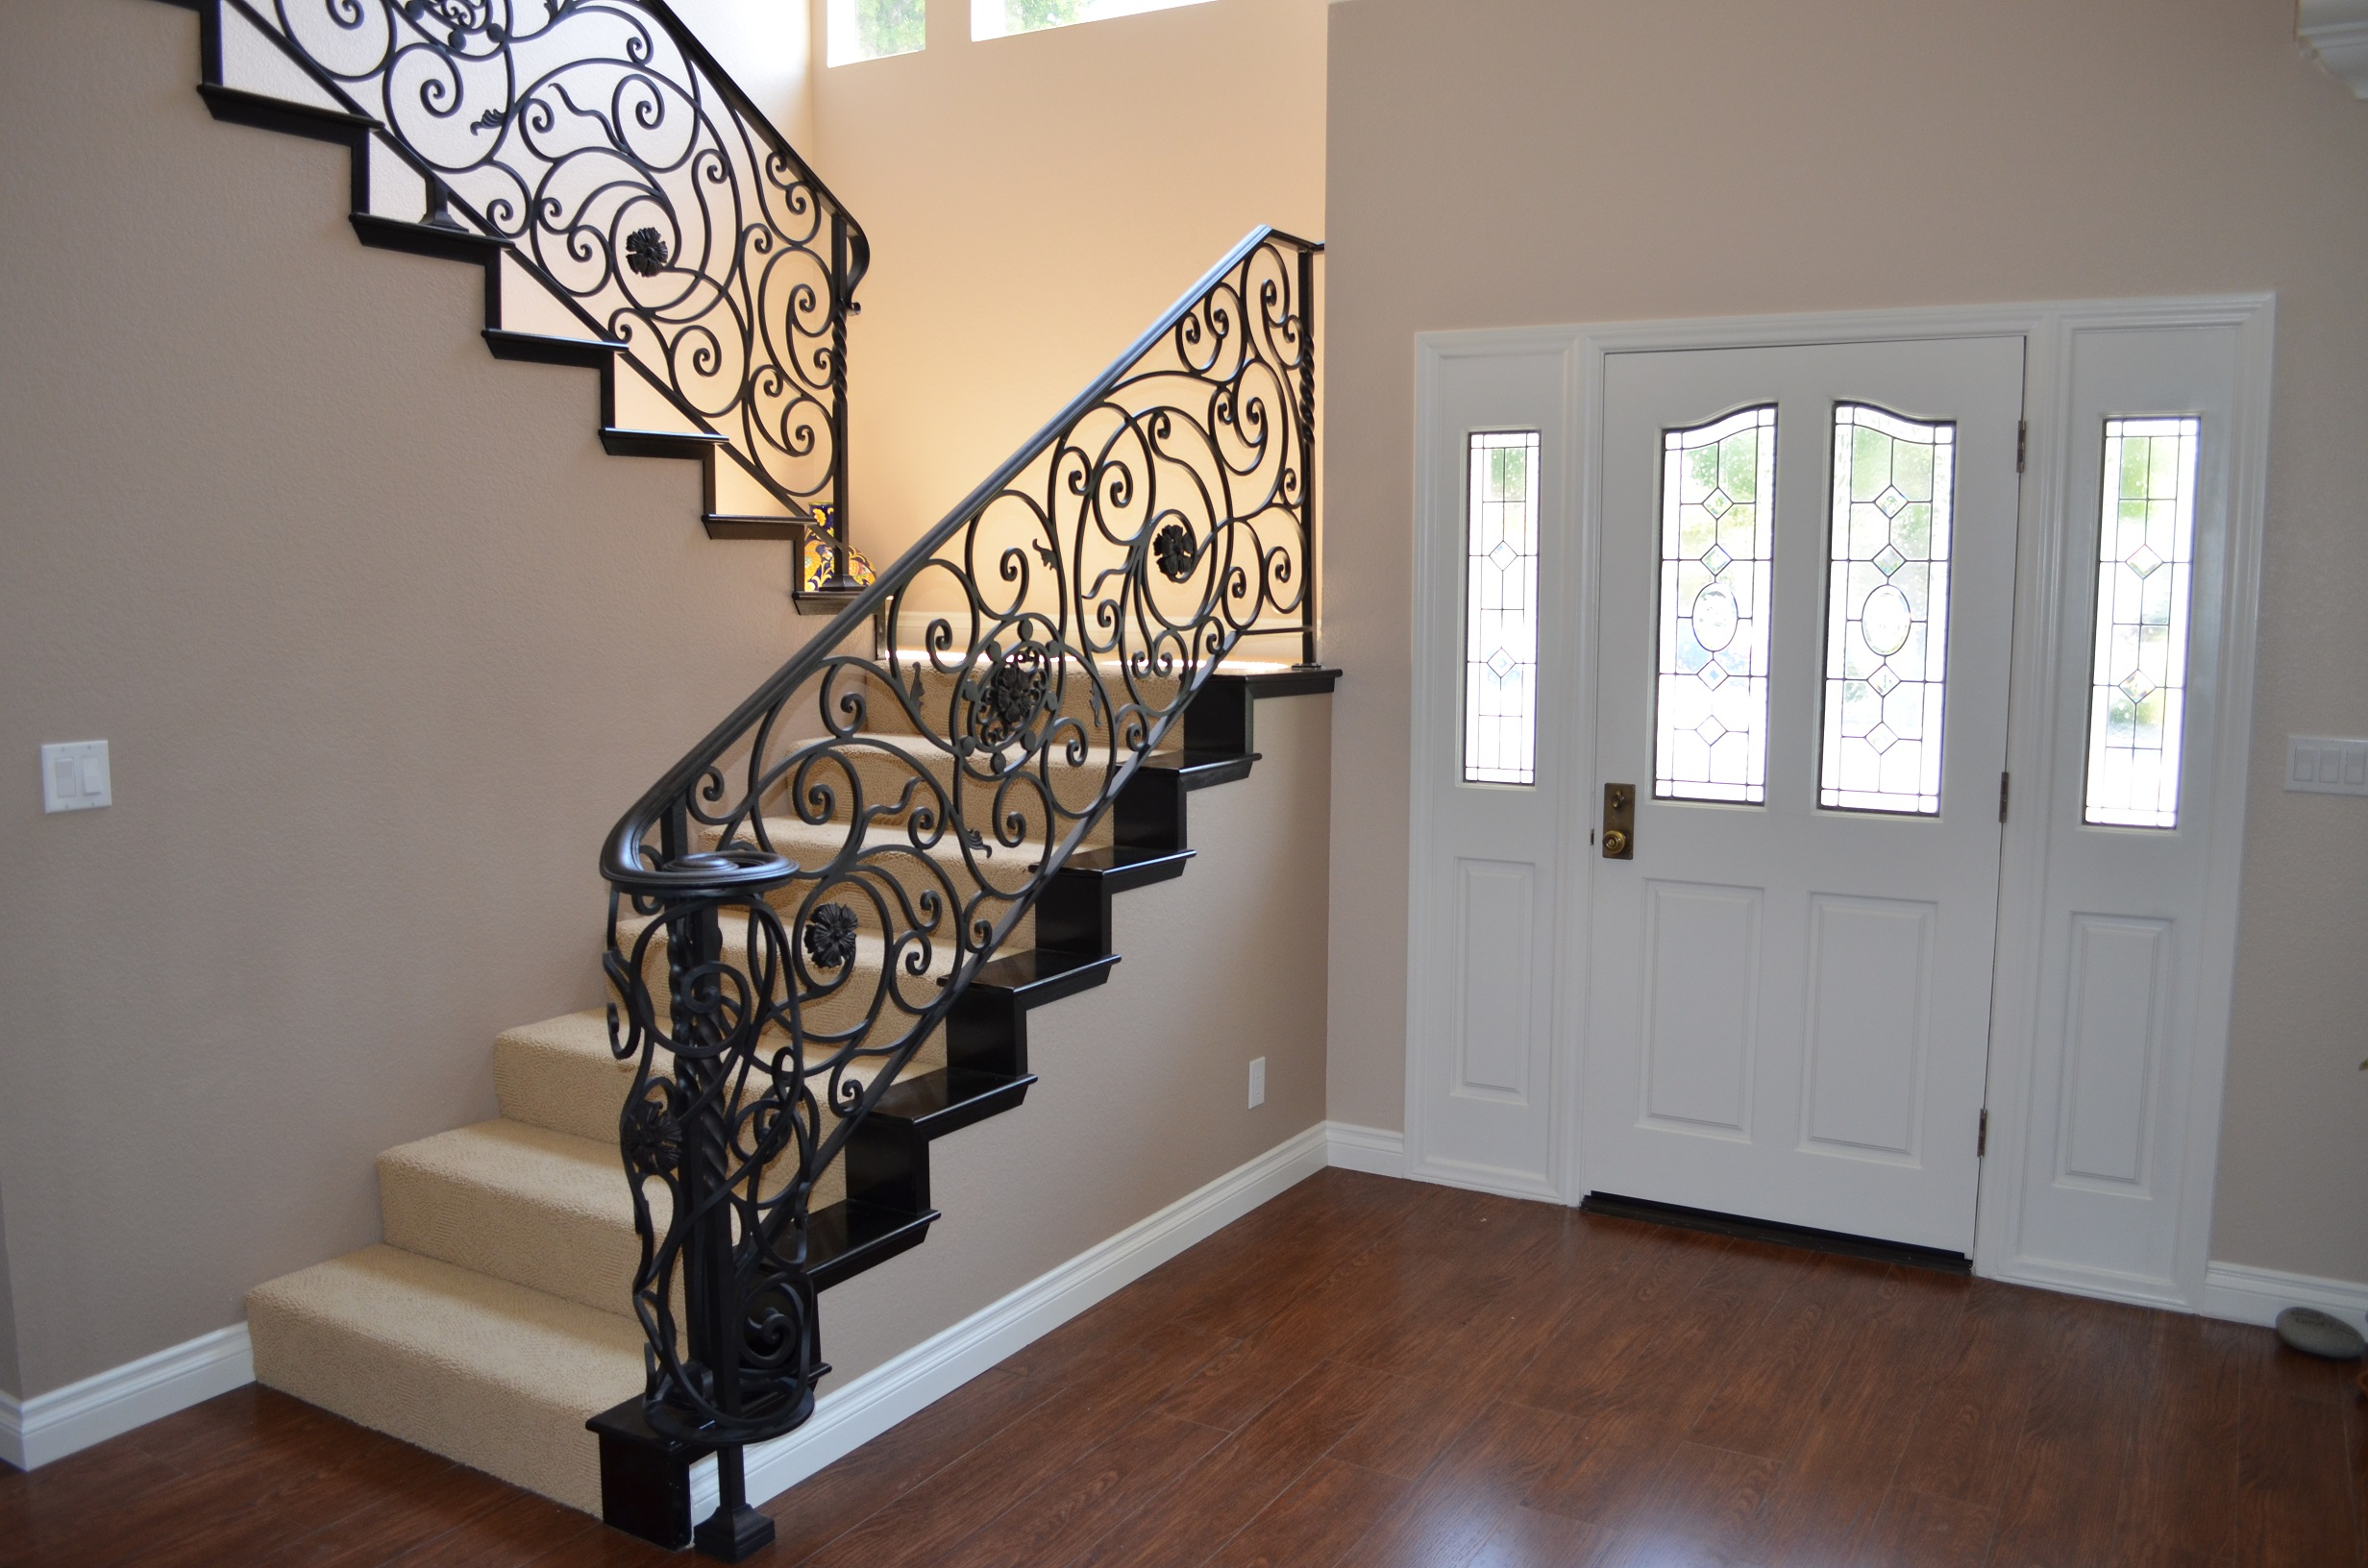 rod iron railing adds perfection to every step of. Black Bedroom Furniture Sets. Home Design Ideas